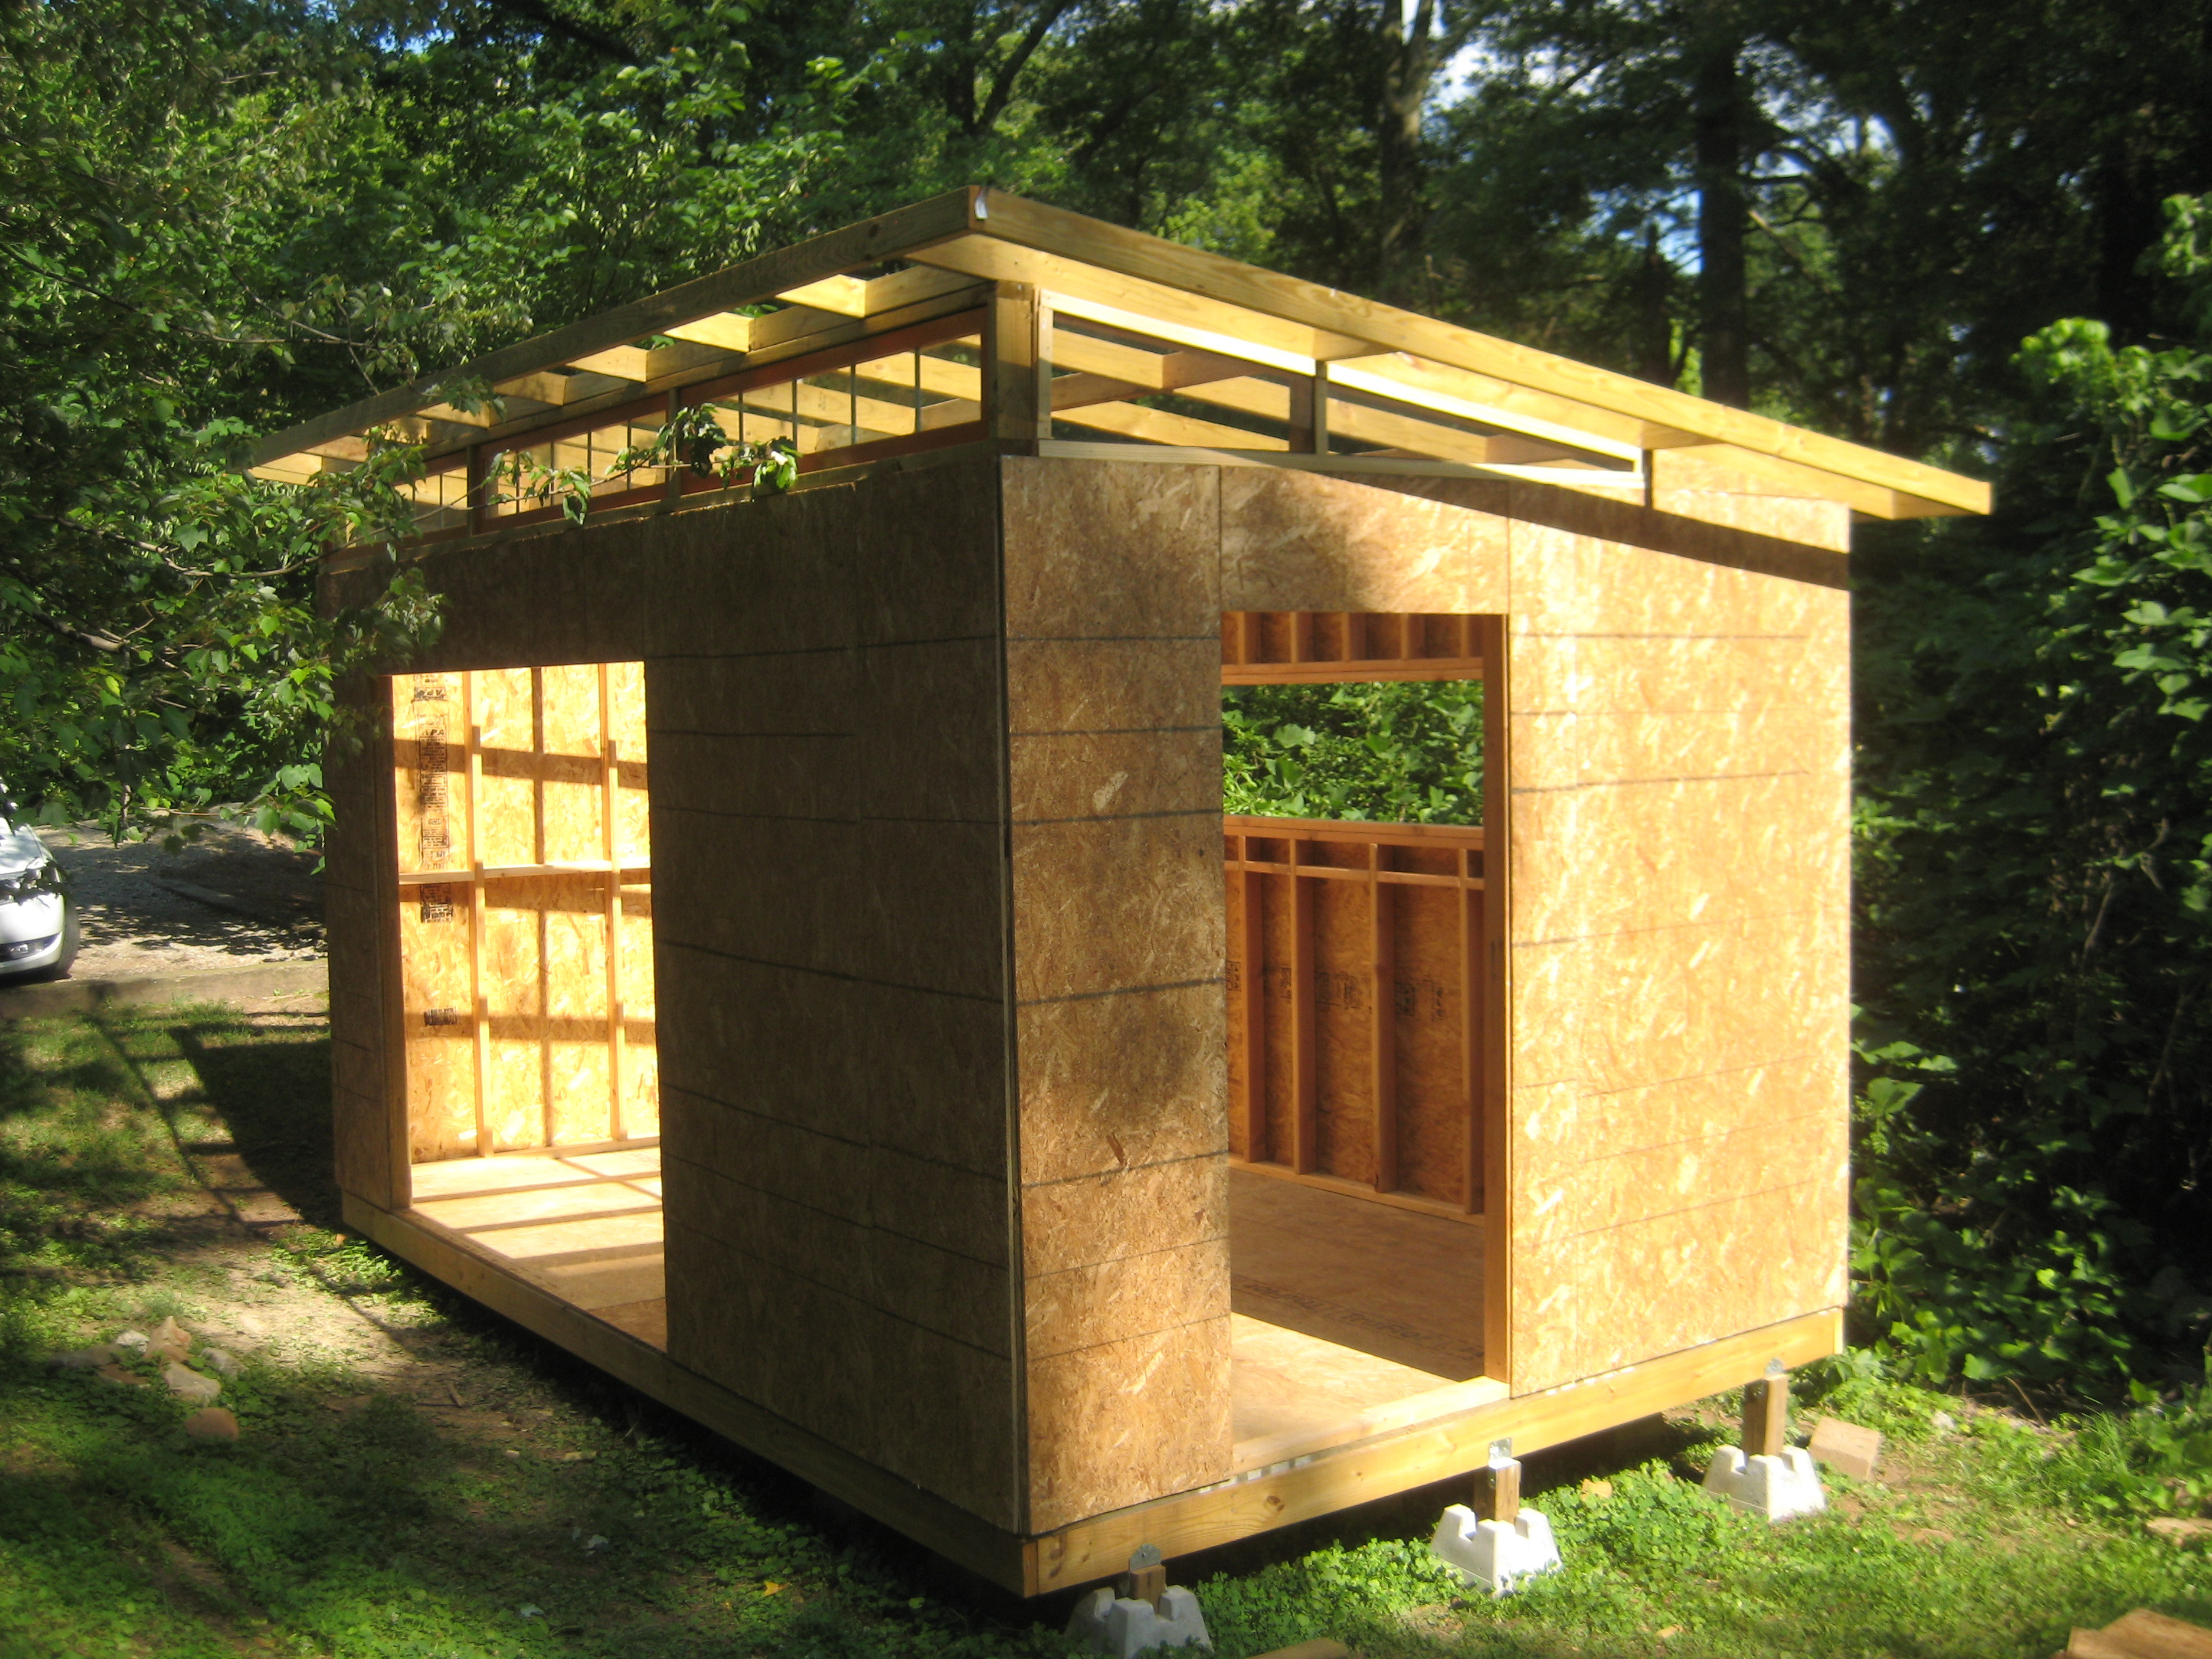 Best ideas about DIY Garden Shed Plans . Save or Pin DIY Modern Shed project Now.